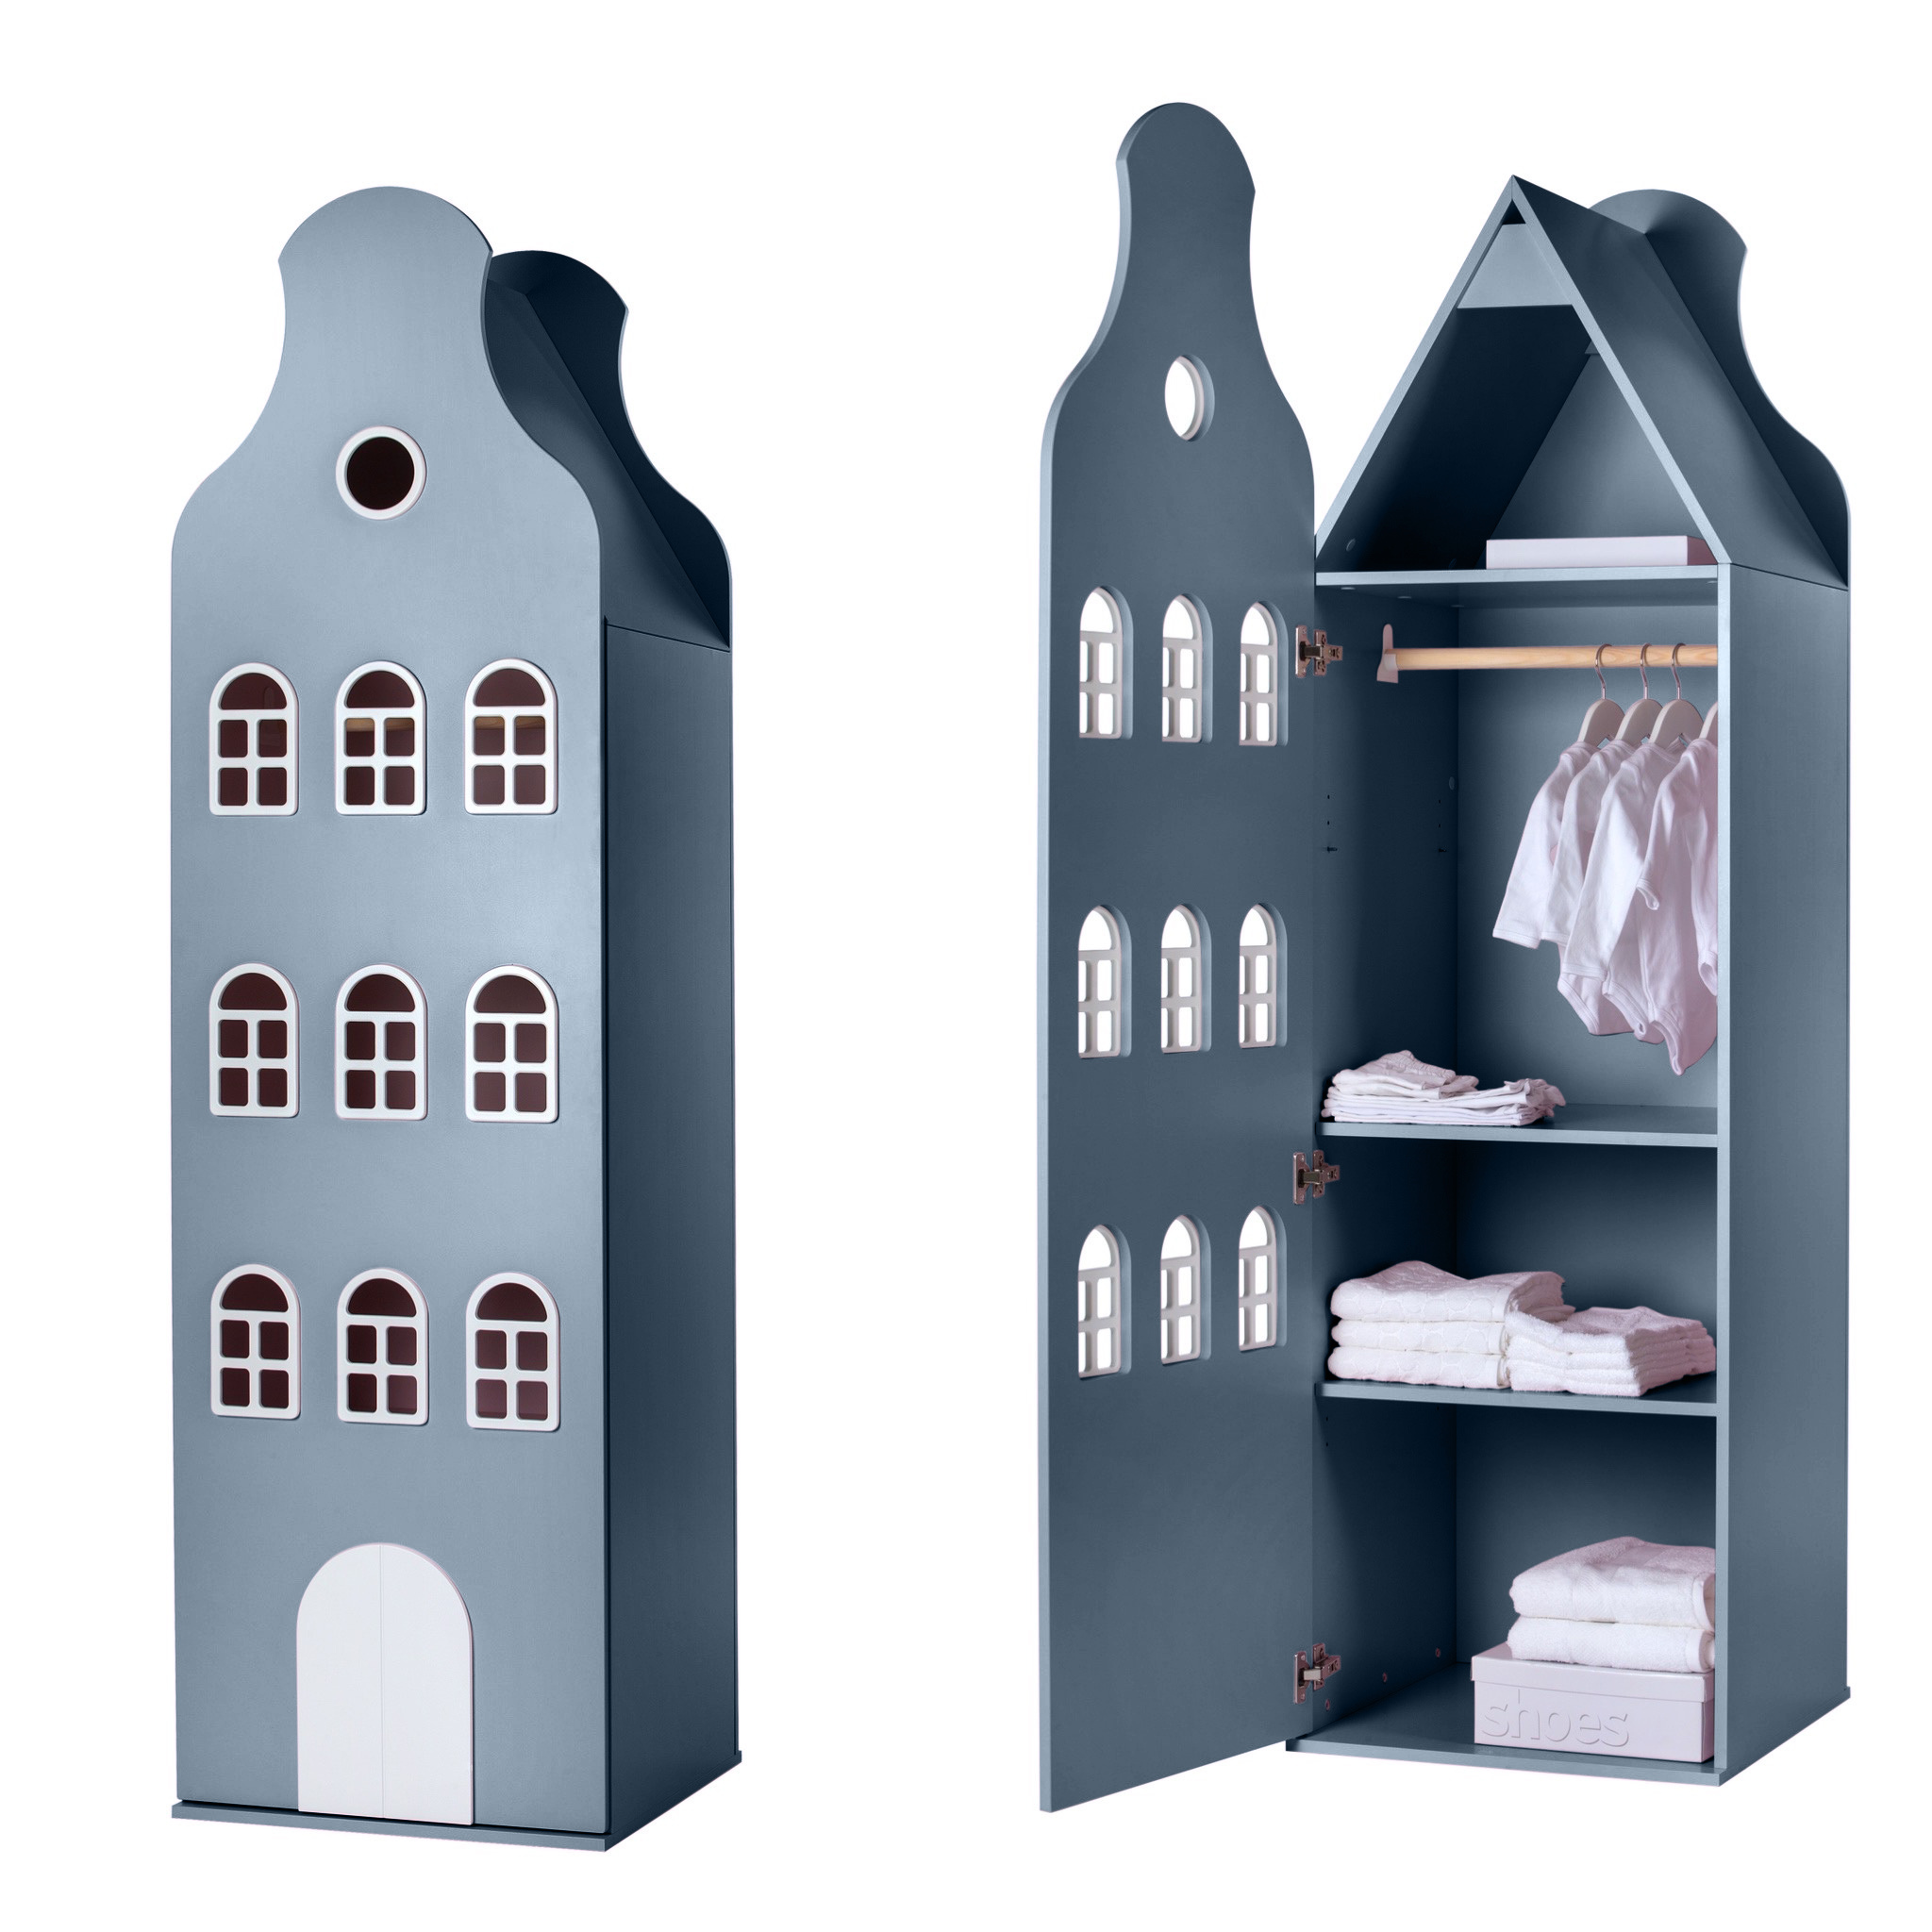 Cabinet Amsterdam Bellgable, XL 216/60/60 cm. All colors.-6